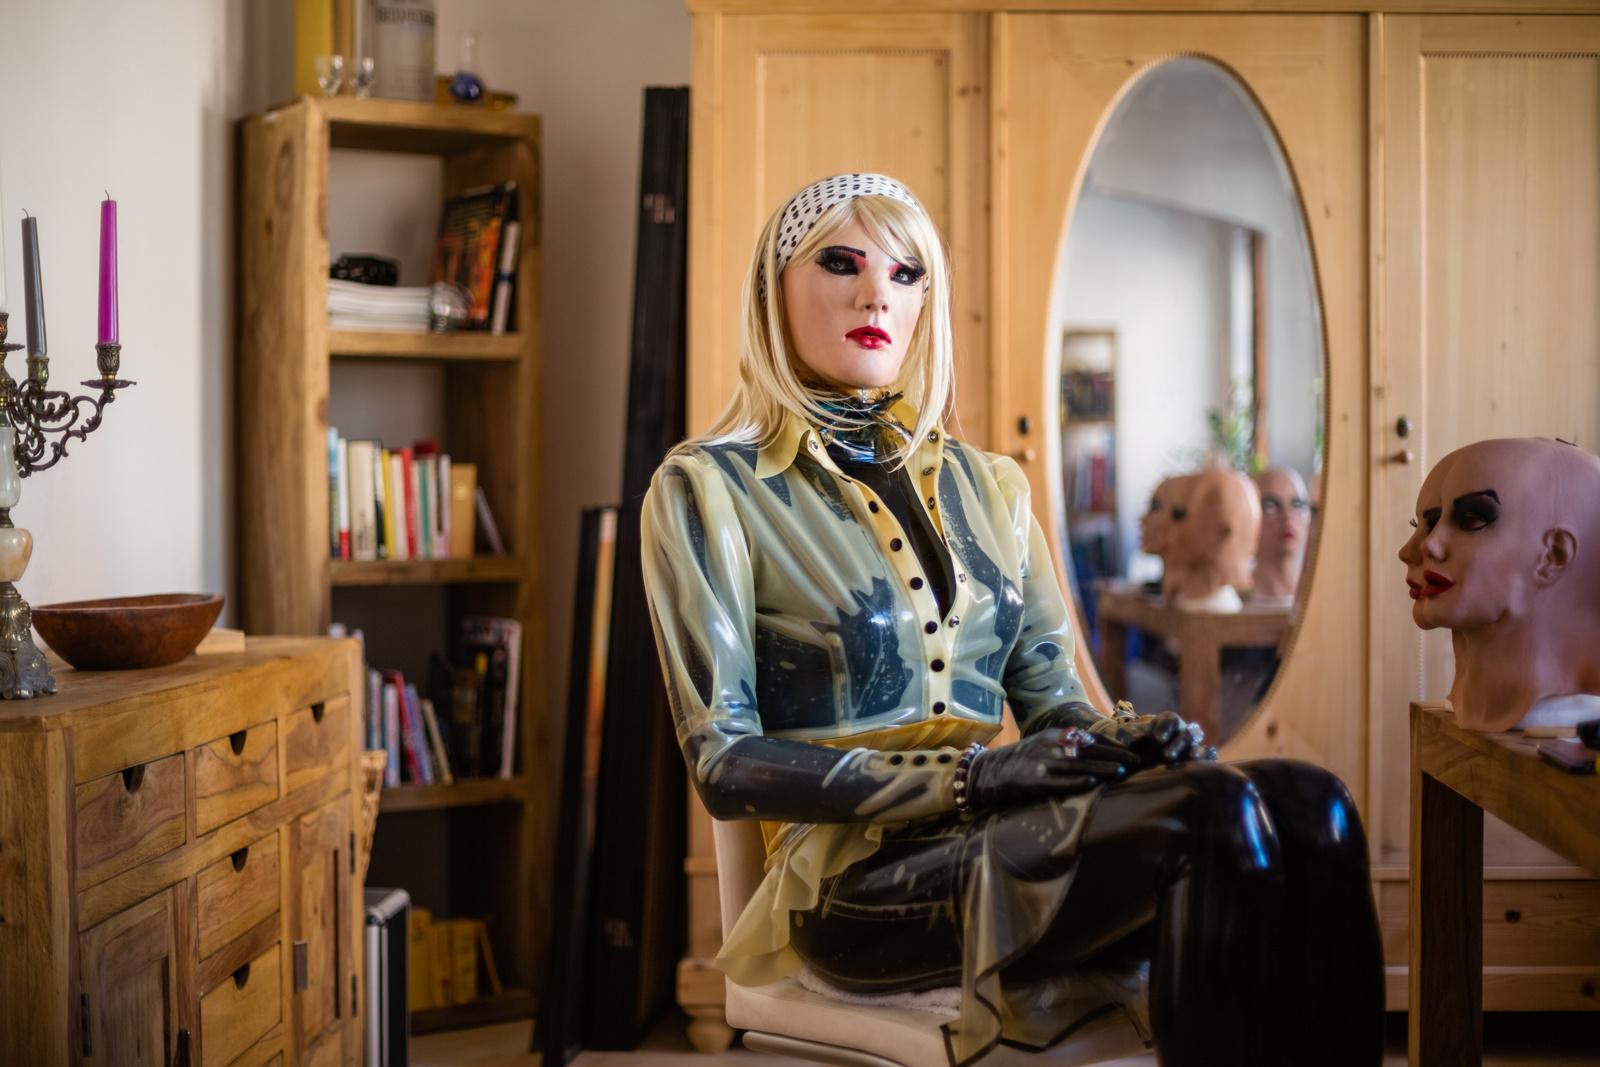 """AUGSBURG, GERMANY - AUGUST 05, 2015: Portrait of female masker Christian alias 'Chrissie Seams', double the age of his alter ego, in his living-room, August 05, 2015 in Augsburg, Germany. Female masking presents an outlet for him, as a heterosexual and cisgender male, to live out his female side and latex fetish. On his right stand a variety of masks that he uses for experimenting with airbrushing and other alteration techniques in order to individualise the look of his alter ego. """"Since my childhood I have been fascinated by latex, which very soon merged with my aspirations to look as sexy as a woman. I remember the first time I had the wish to slip into a woman's skin was at the age of 14 when I saw a model wearing sexy lingerie in a Penthouse magazine. I imagined slipping into her skin, like slipping into a surface made from latex. I love the feeling of being encapsulated and the sensitization from head to toe when wearing latex. At the same time I endeavor aesthetics. Visually, I only like latex on women, hence I don't gain anything from my fetish if not dressed as a woman myself. Many times I wondered if there was a Chrissie if it wasn't for my passion for latex."""" - Female masker Christian alias Chrissie Seams, heterosexual man, double the age of his alter ego"""